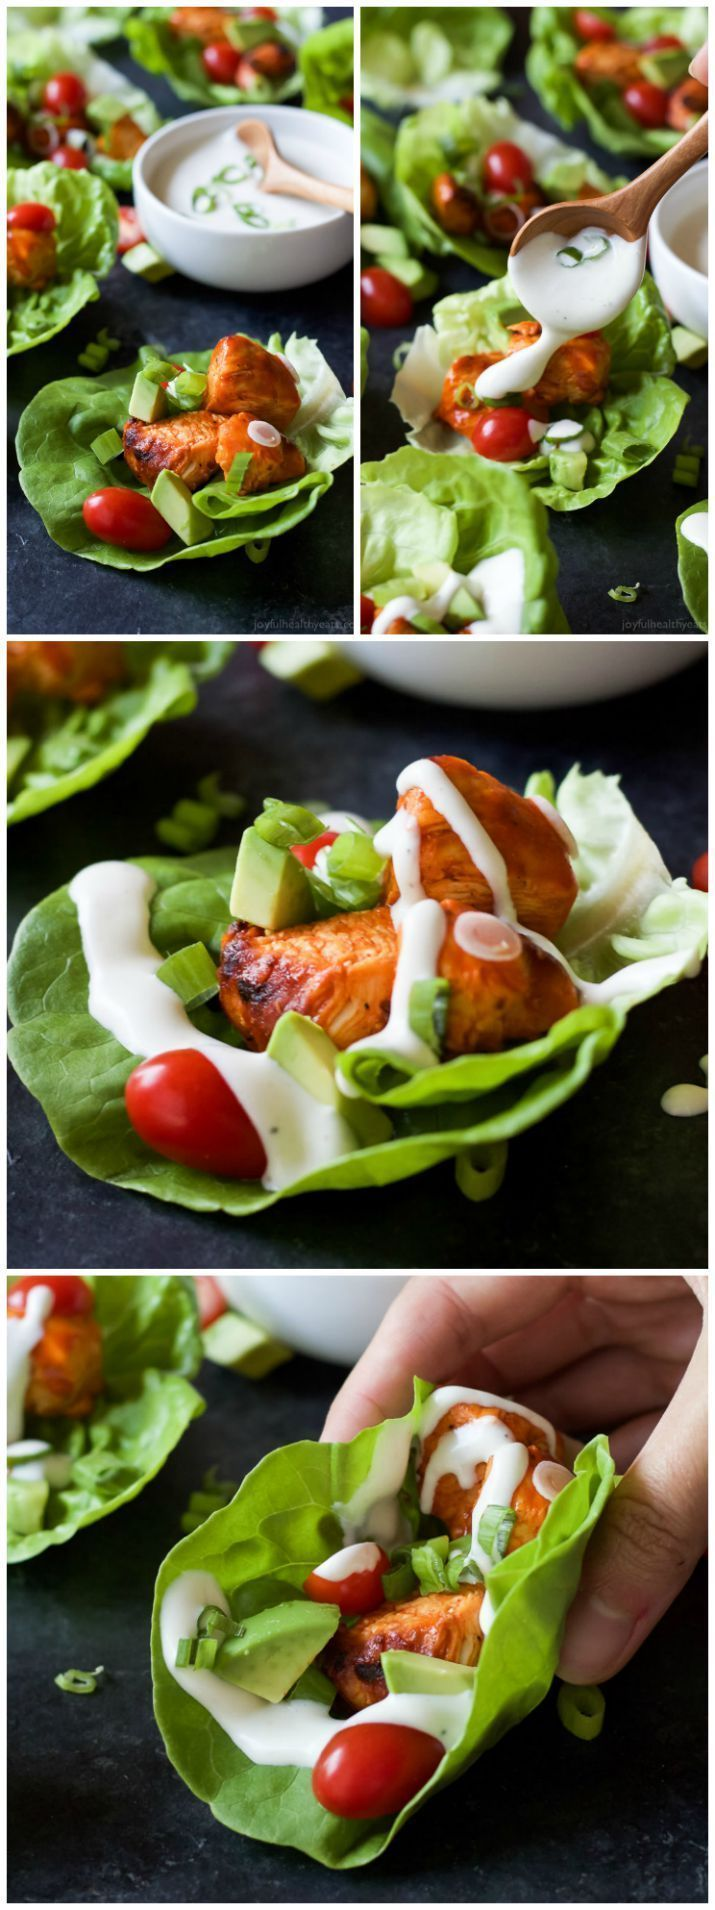 Get game day ready with these healthier low calorie Grilled Buffalo Chicken Lettuce Wraps! All the same great flavor with half the calories! These are delicious! #recipes